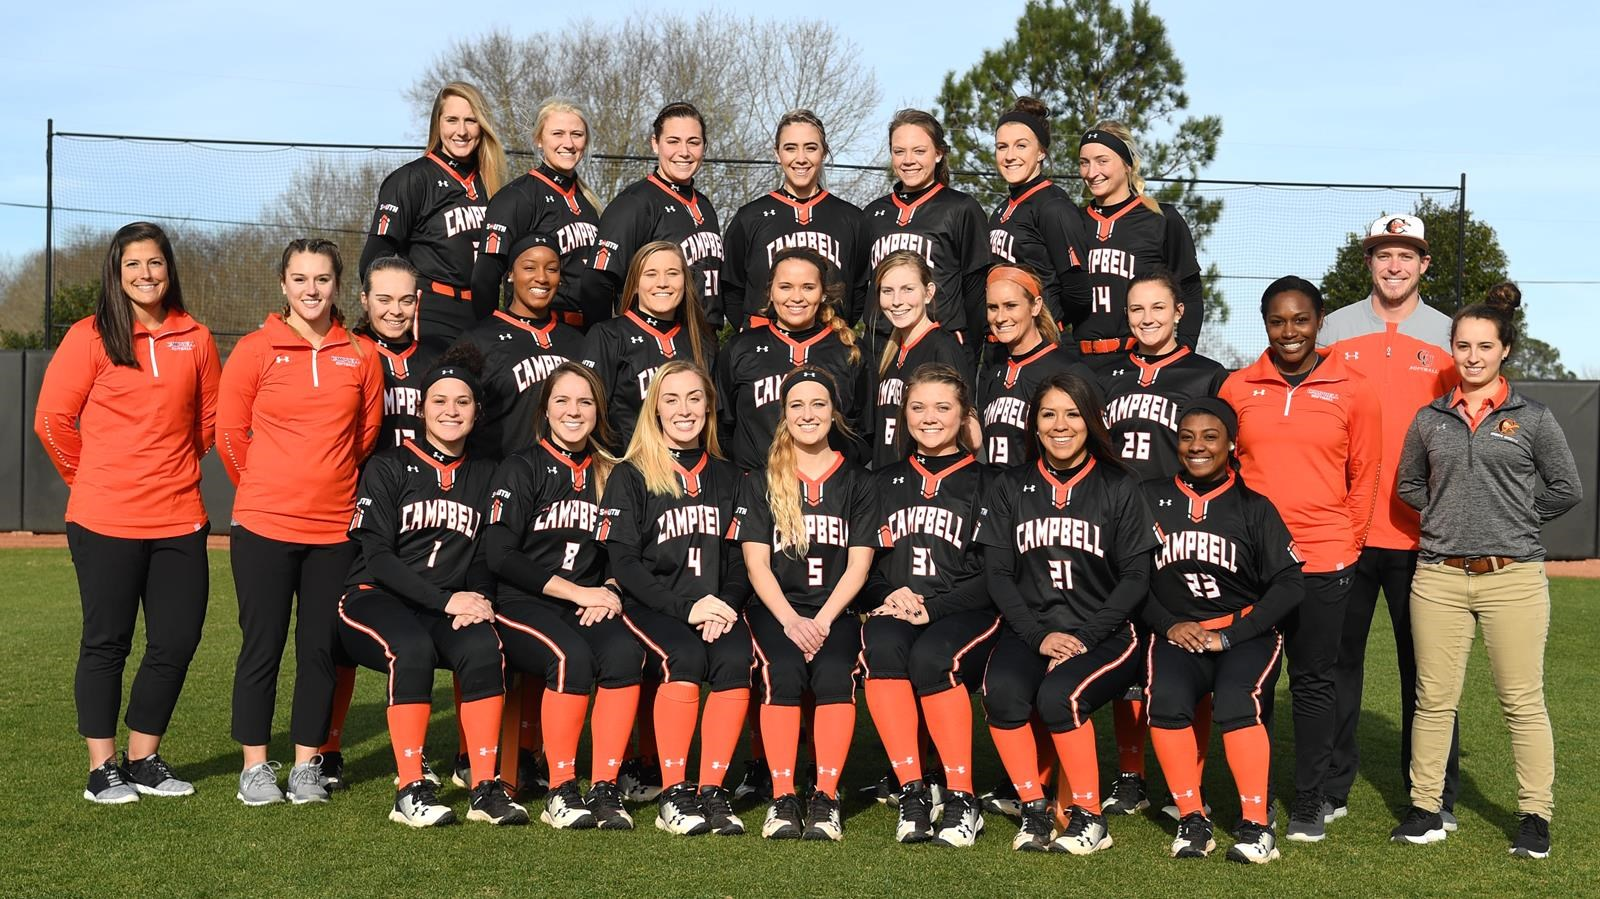 2019 Softball Roster - Campbell University